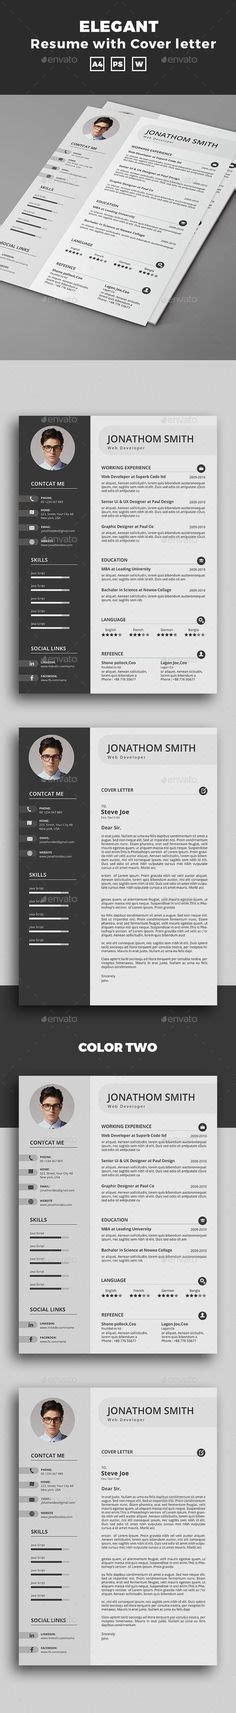 adorable editable floral 2 page resume template in psd